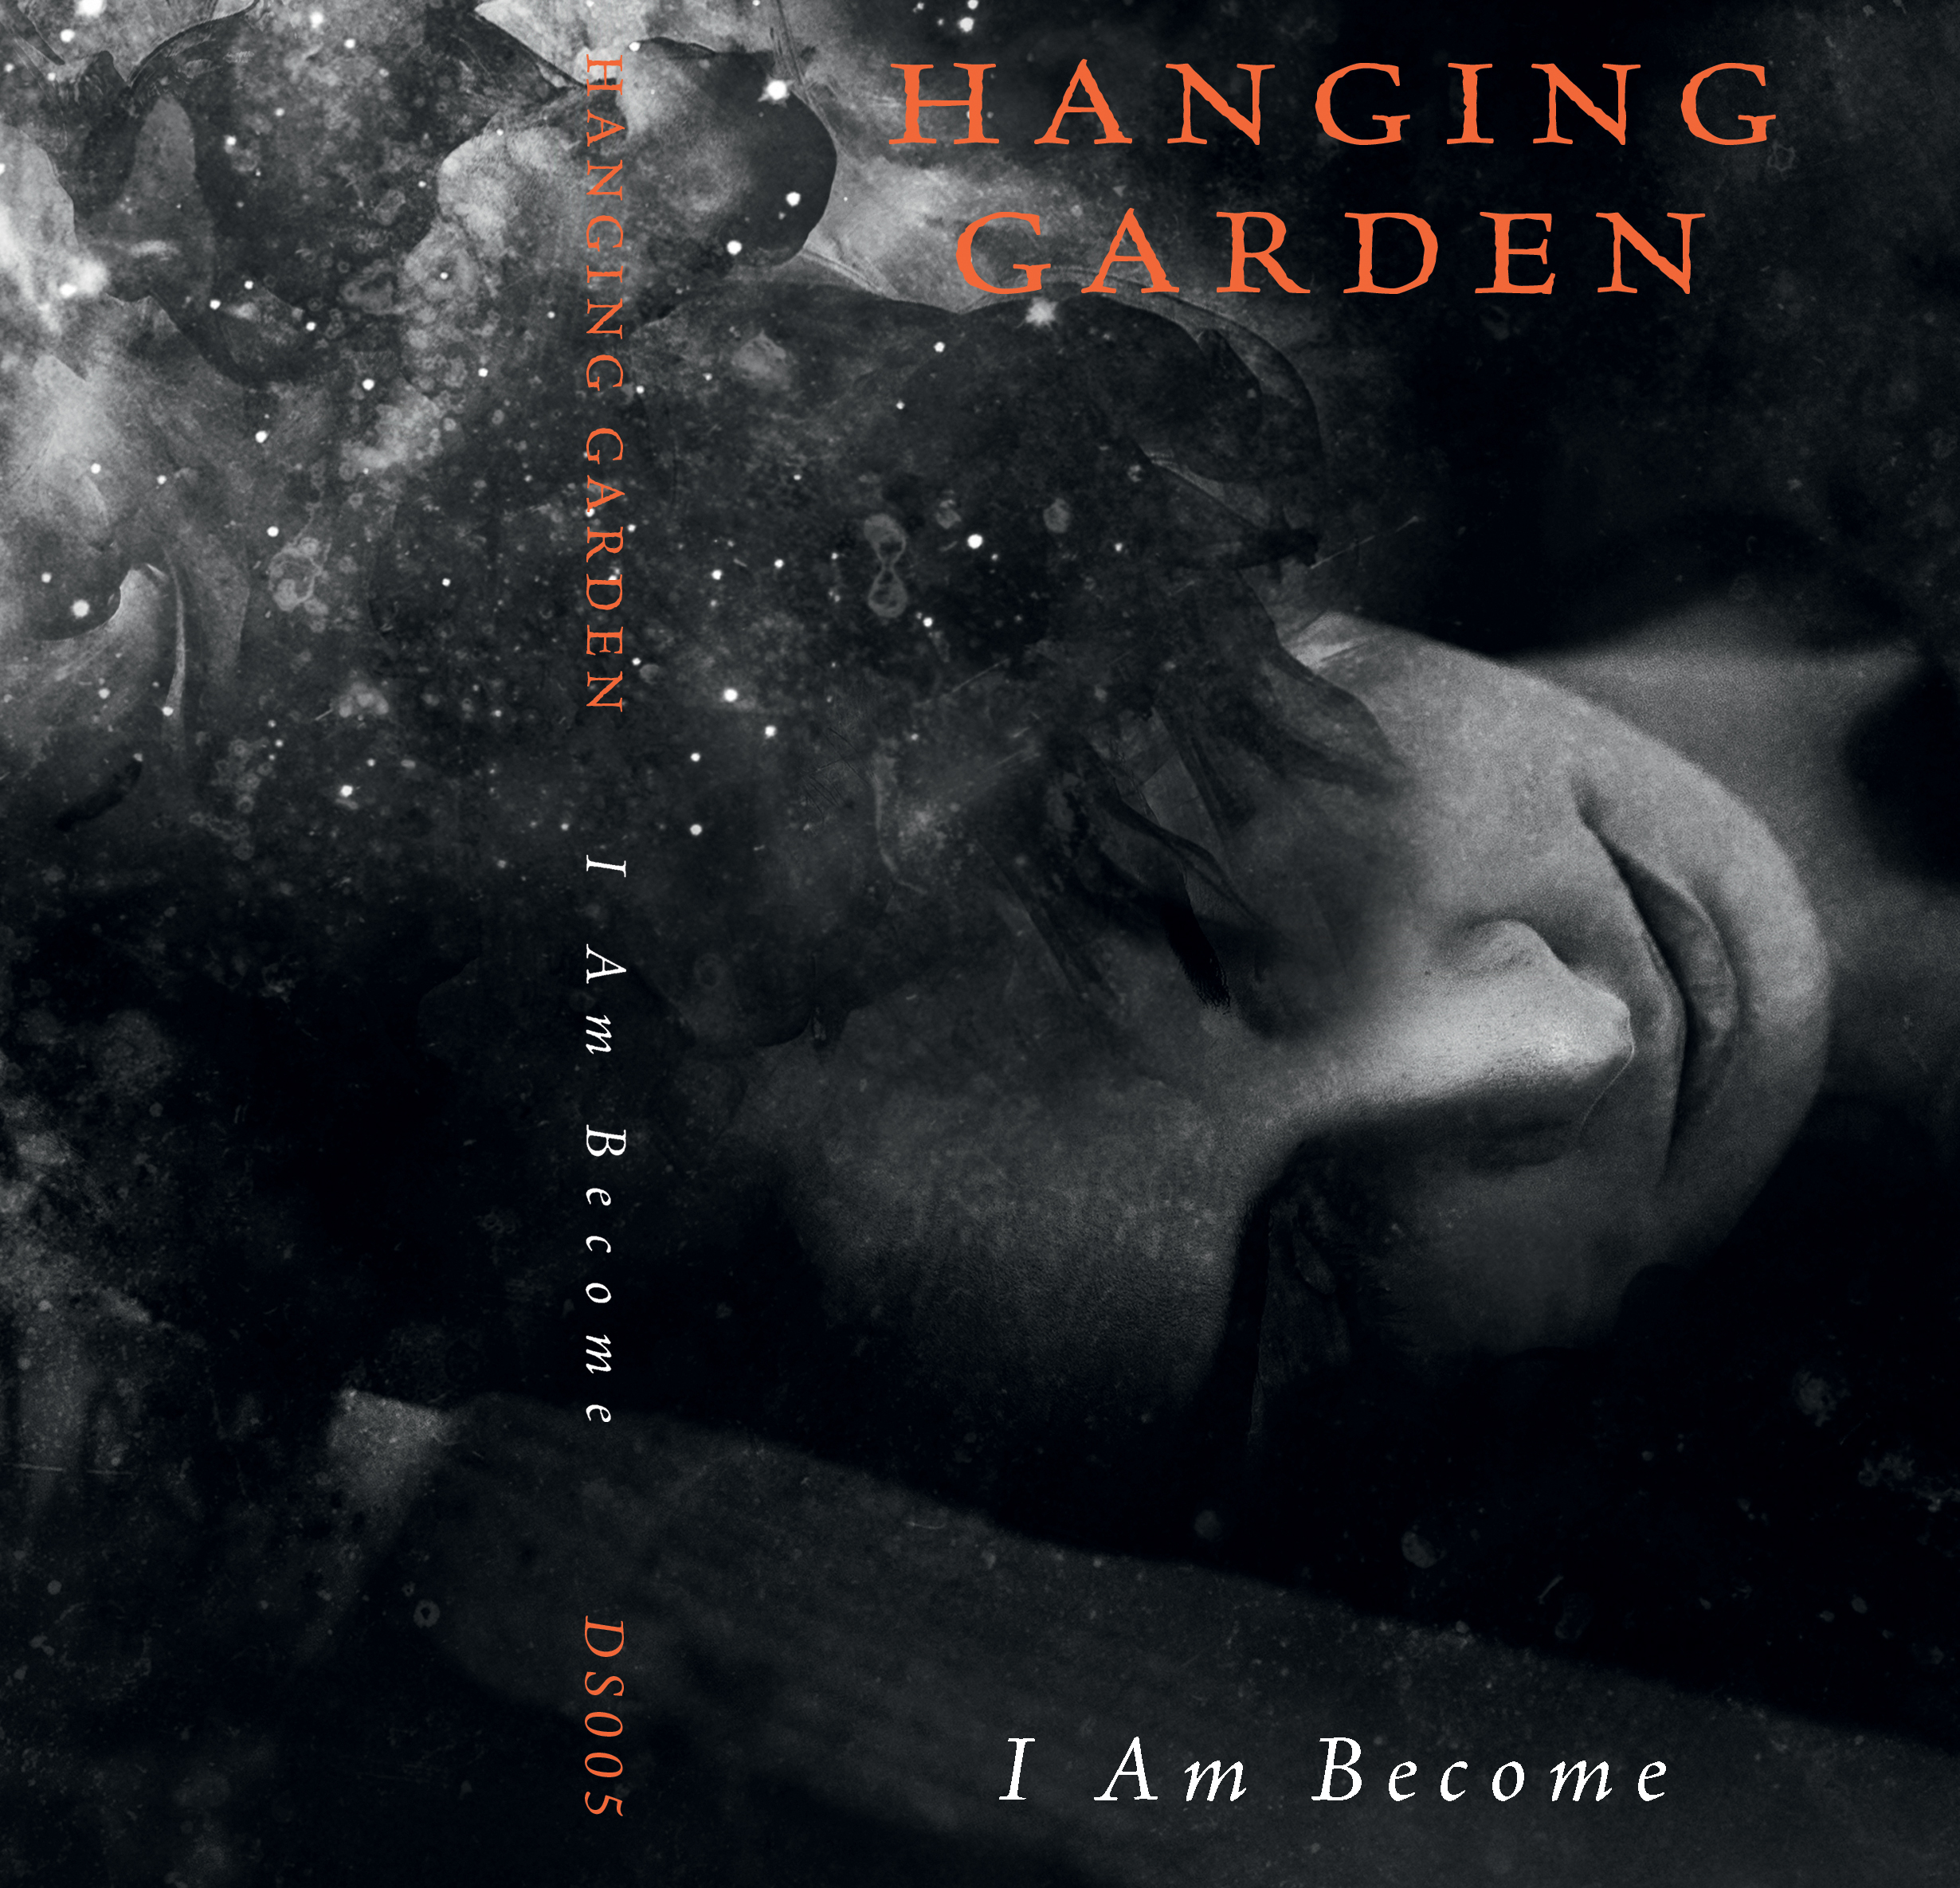 Hanging Garden - I Am Become (Limited Edition Cassette)